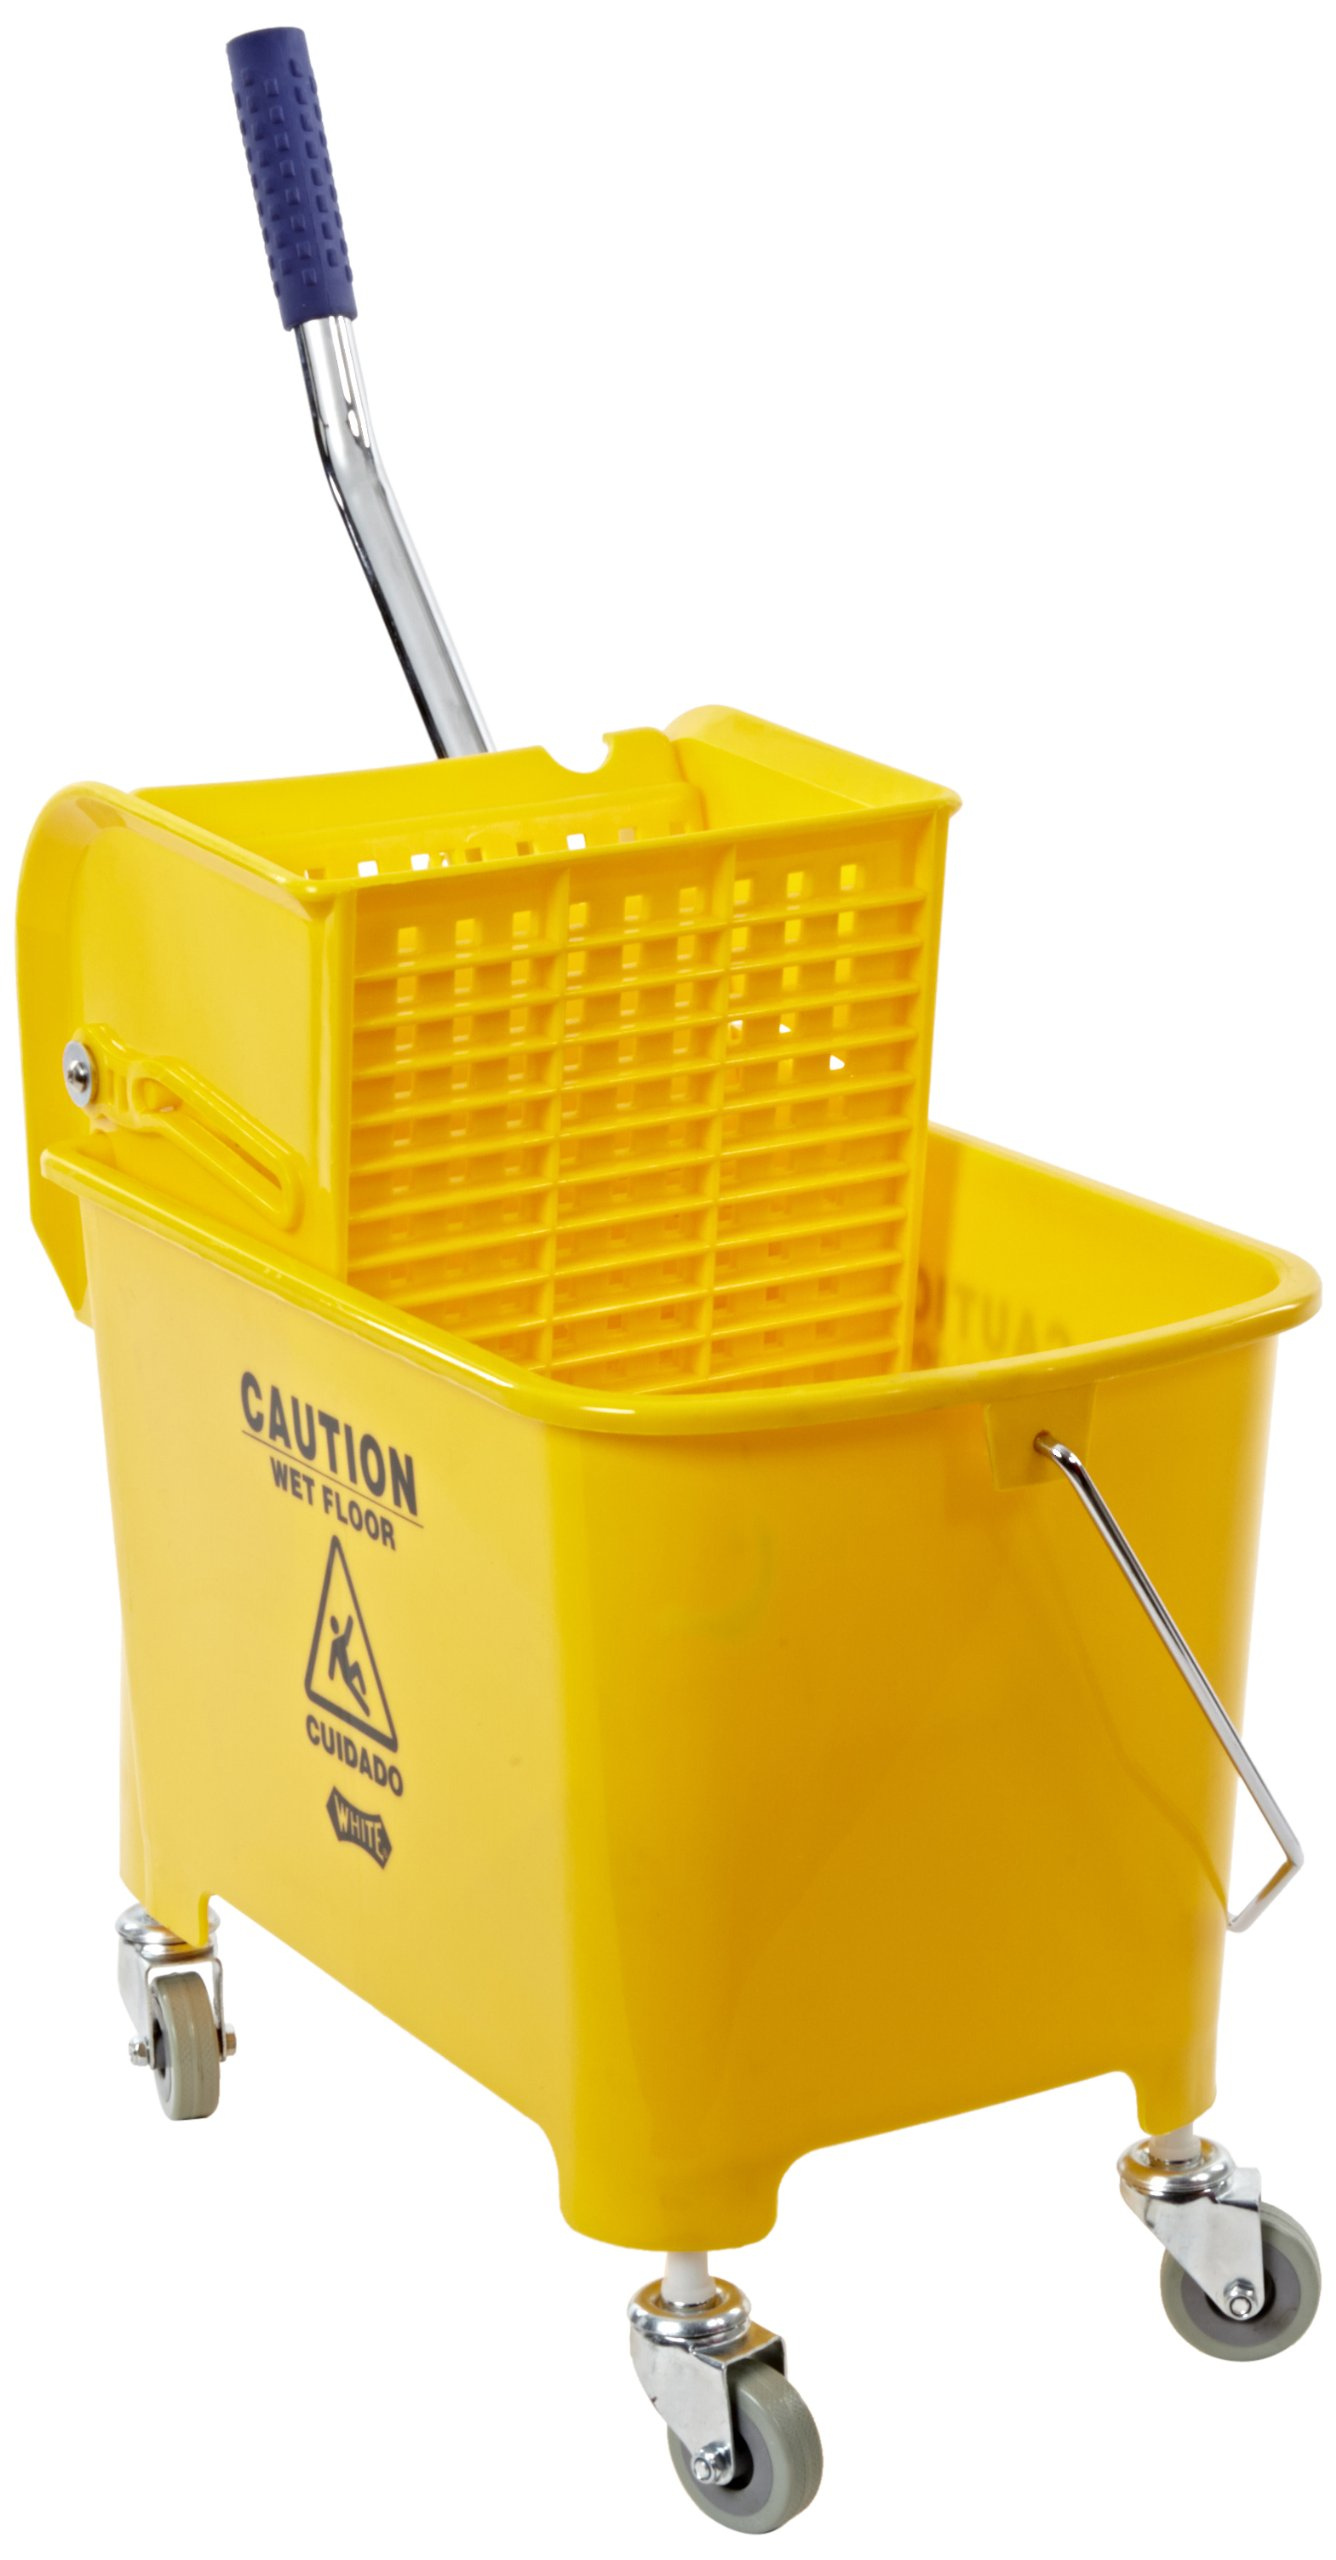 Impact 2Y/2021-2Y Compact Mopping System Combo with 2'' Non-Marking Casters, 21 qt Capacity, 17-1/2'' Height x 10-1/2'' Width x 18'' Depth, Yellow